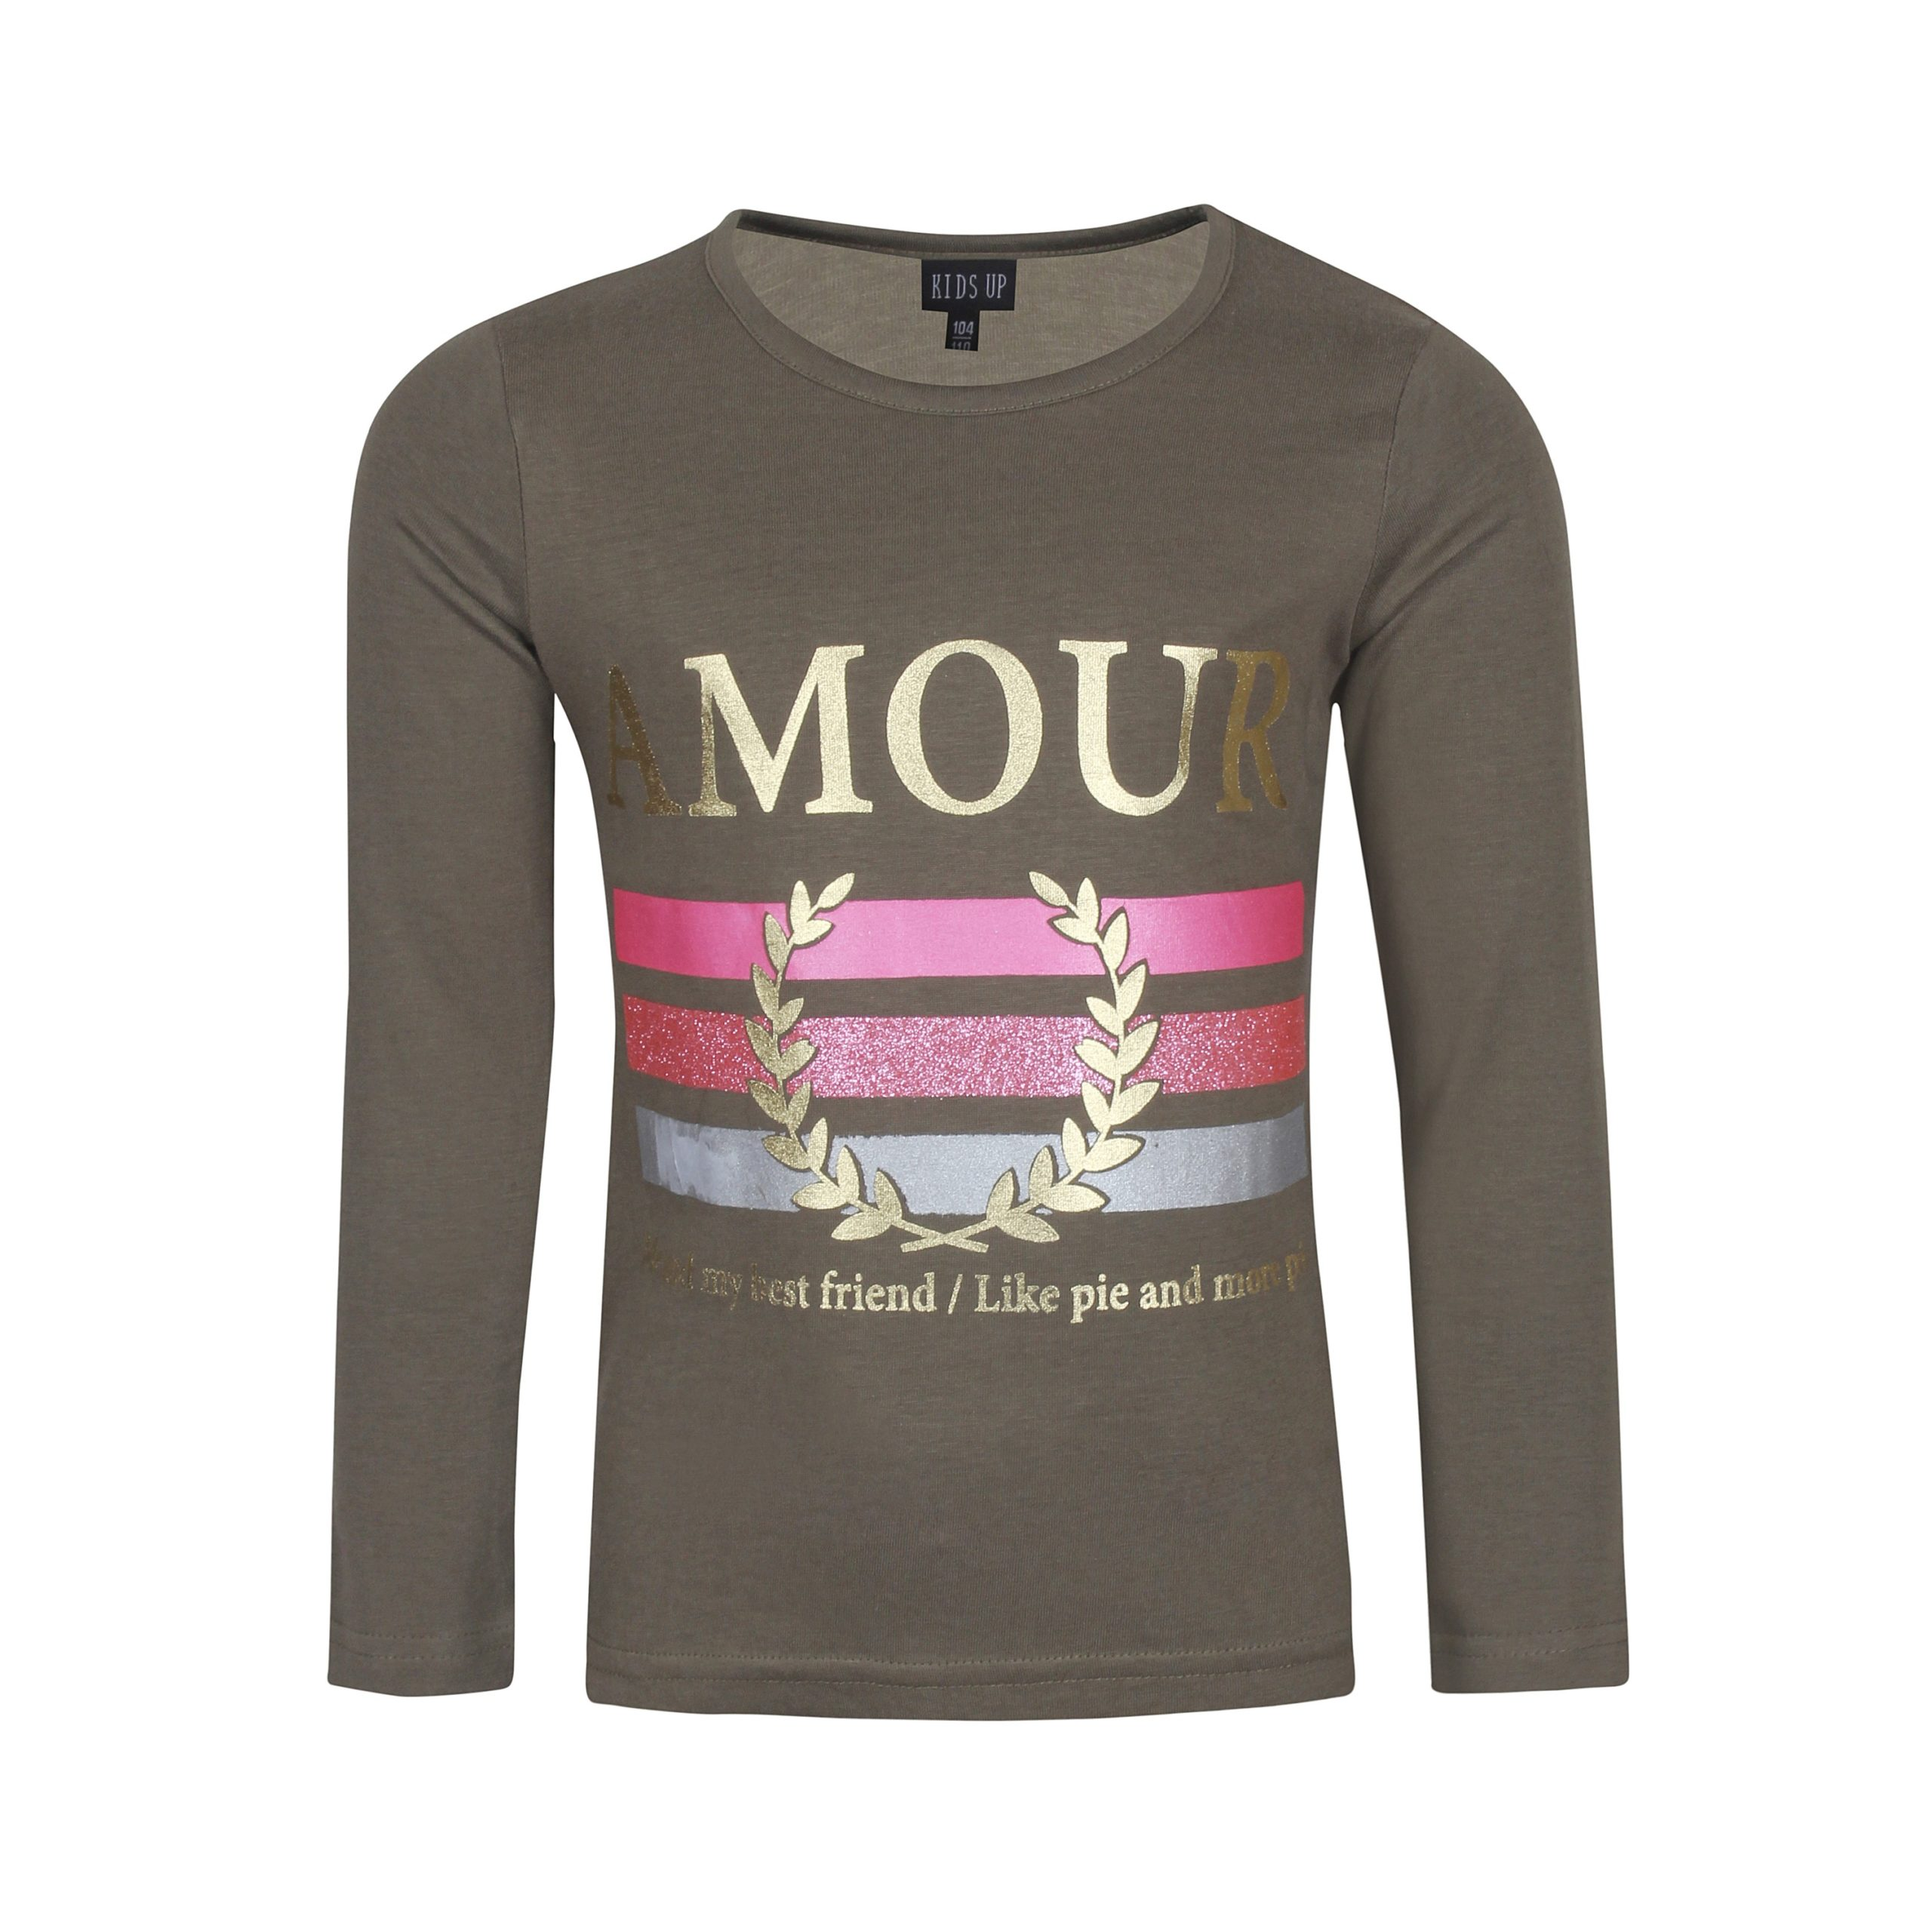 KIDS UP | AMOUR T-SHIRT L/S - ARMY